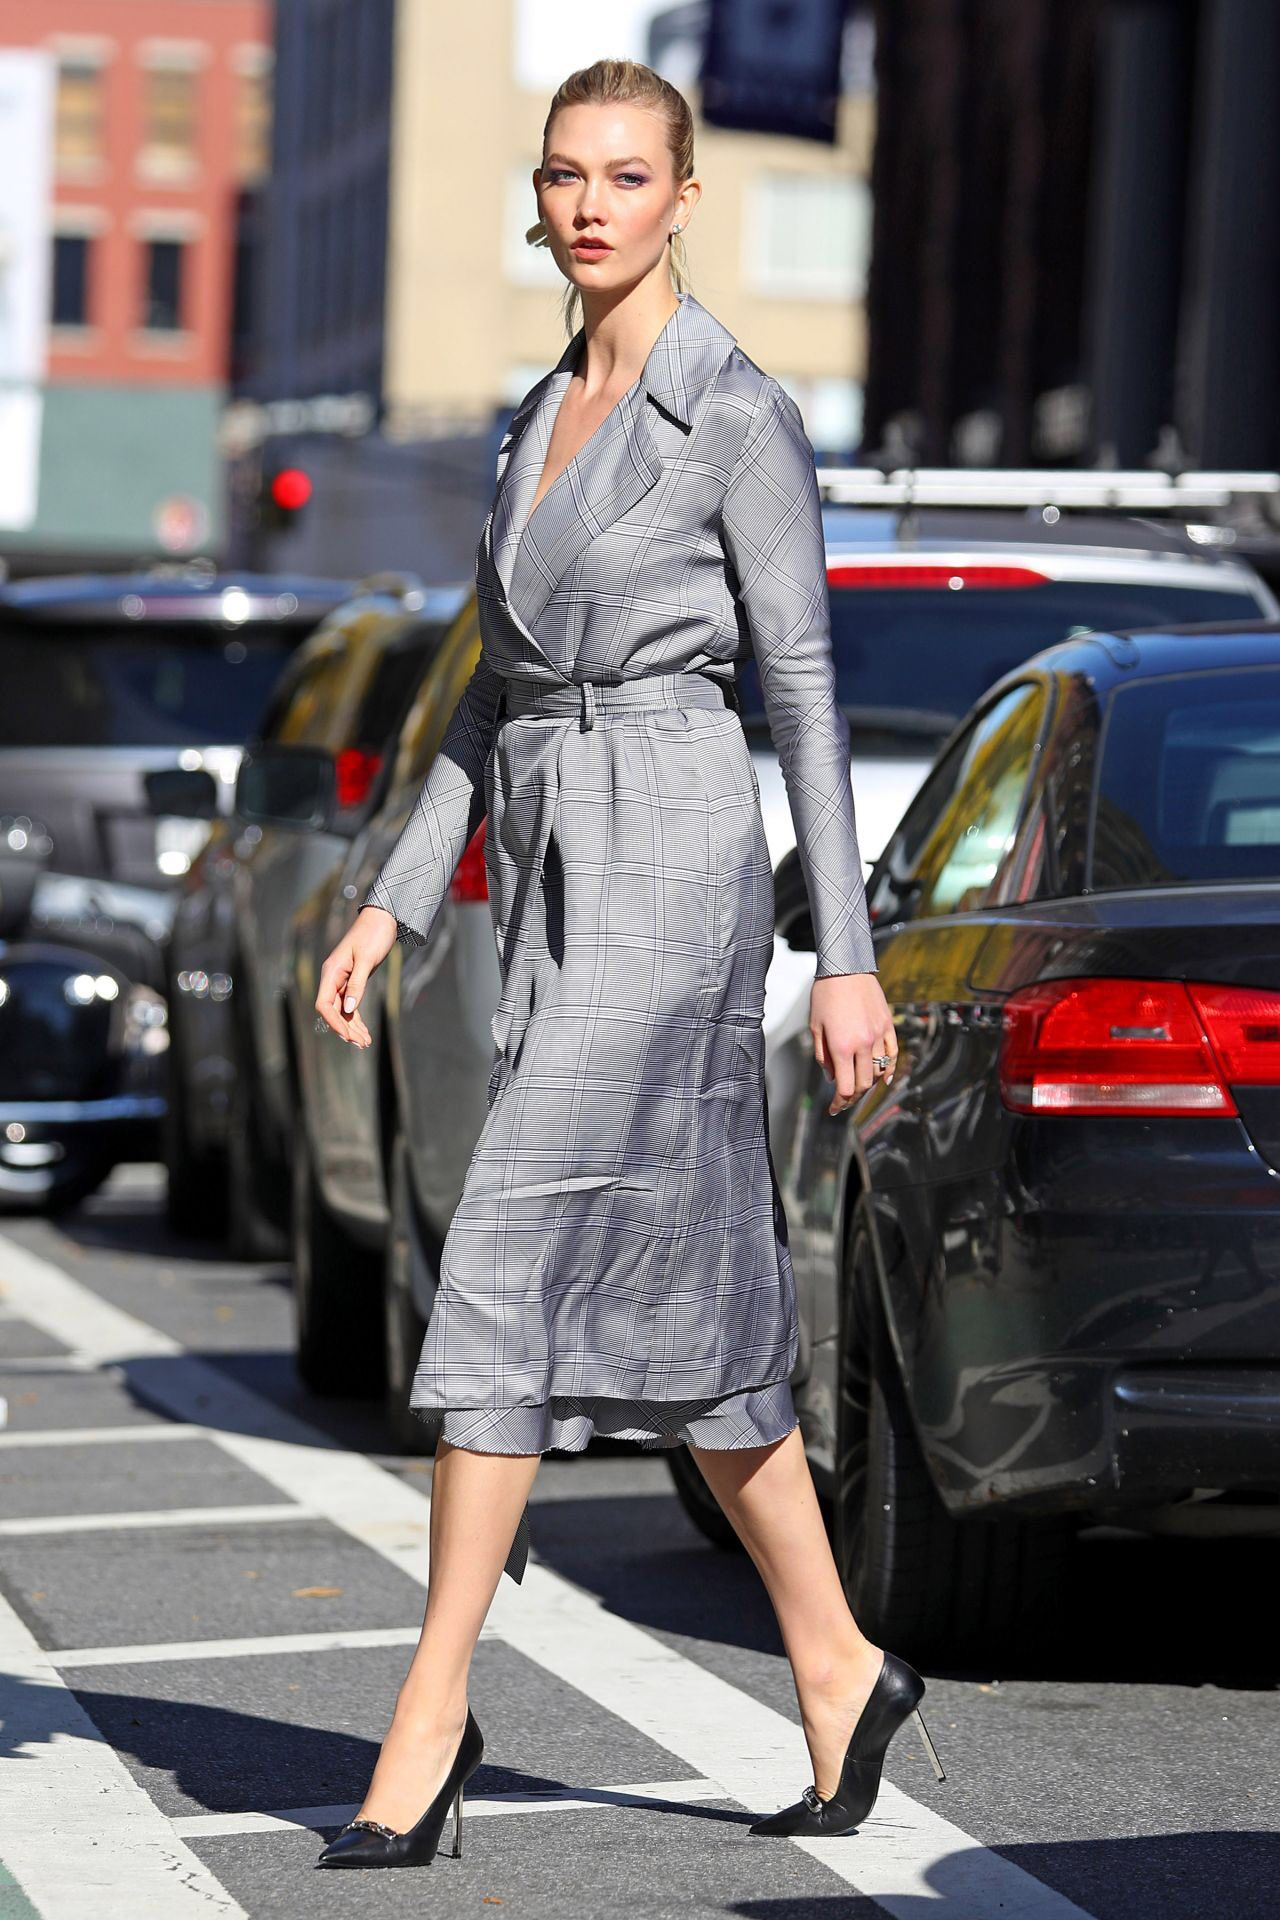 Pin By Mila On Street Style In 2019 Karlie Kloss Style Karlie